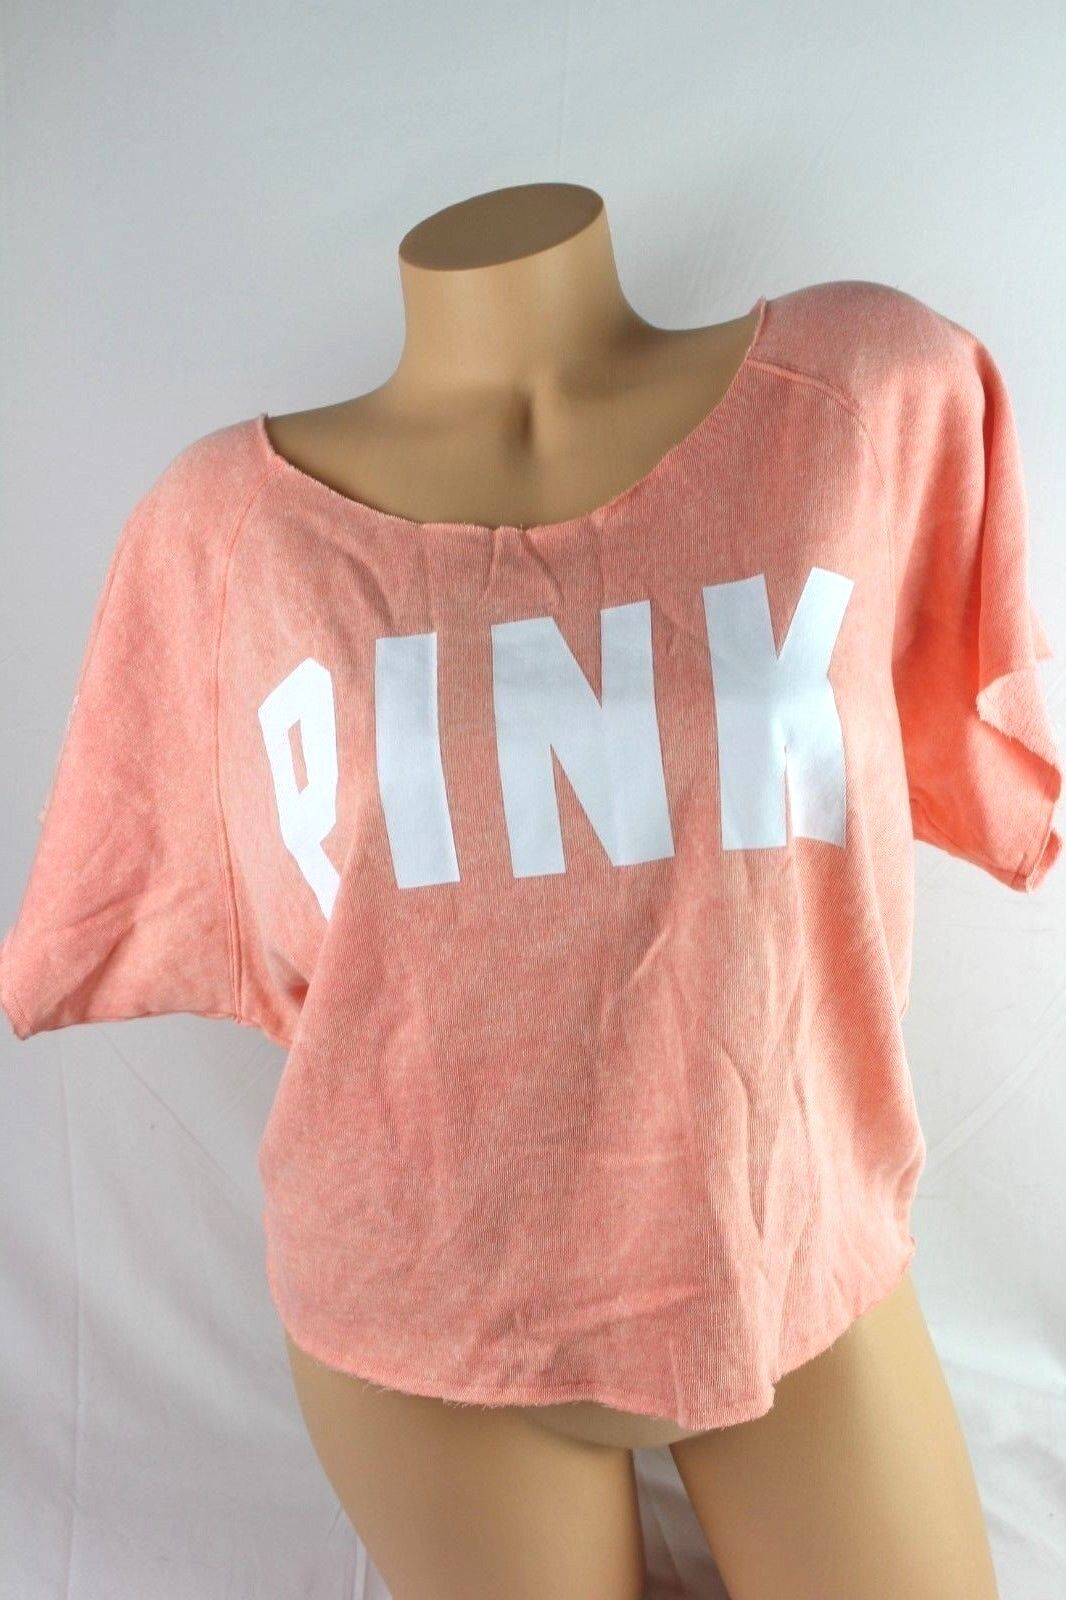 VICTORIA'S SECRET PINK SWEATSHIRT SHORT SLEEVE GRAPHIC CROPPED LARGE LARGE LARGE NEW F169 5a7216